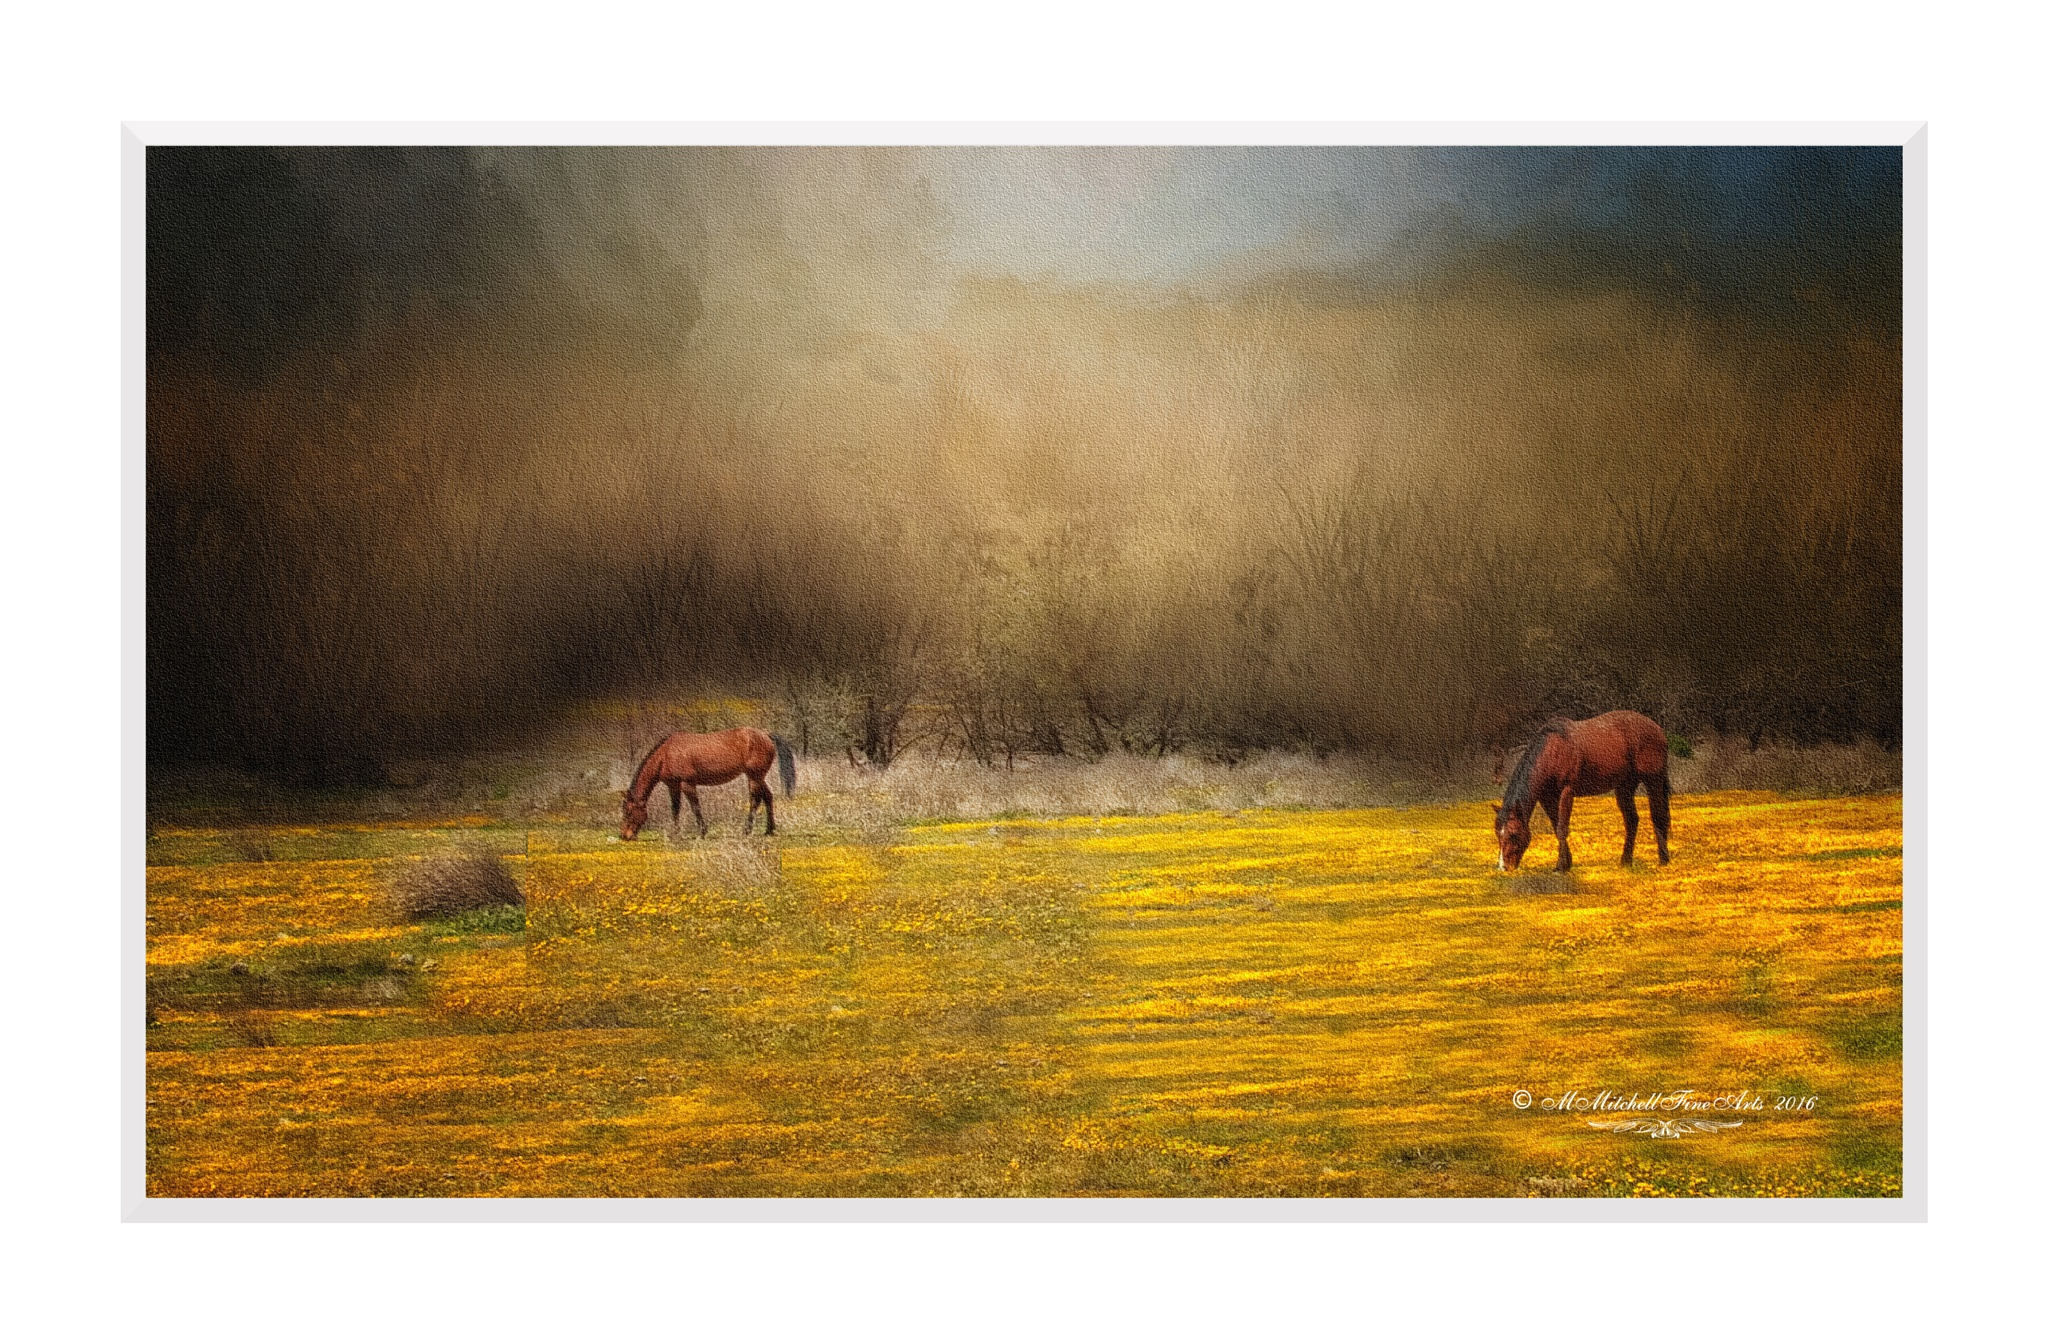 Horses in the Mustard Field by Mary Mitchell